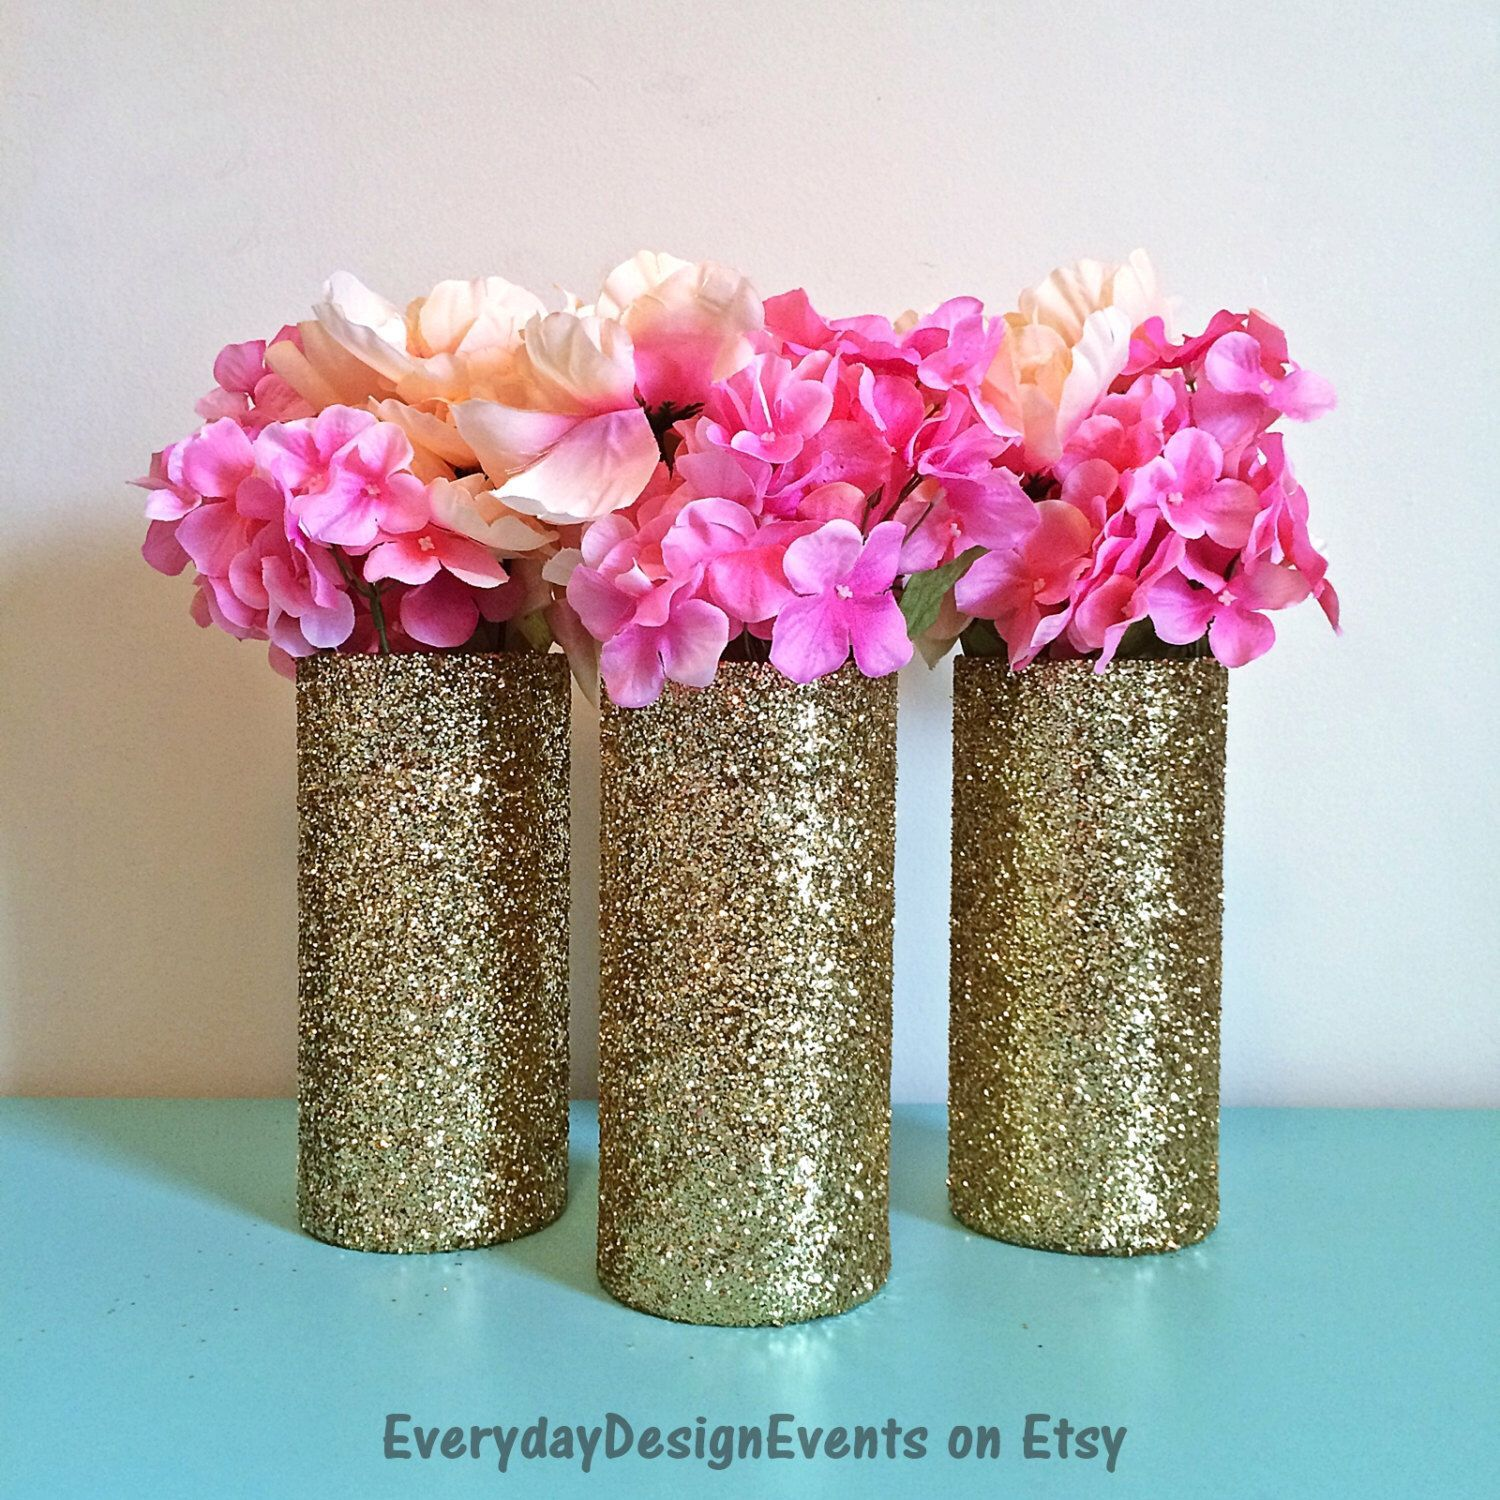 Wedding decorations gold and pink   Gold wedding centerpiece wedding decorations gold glitter vases